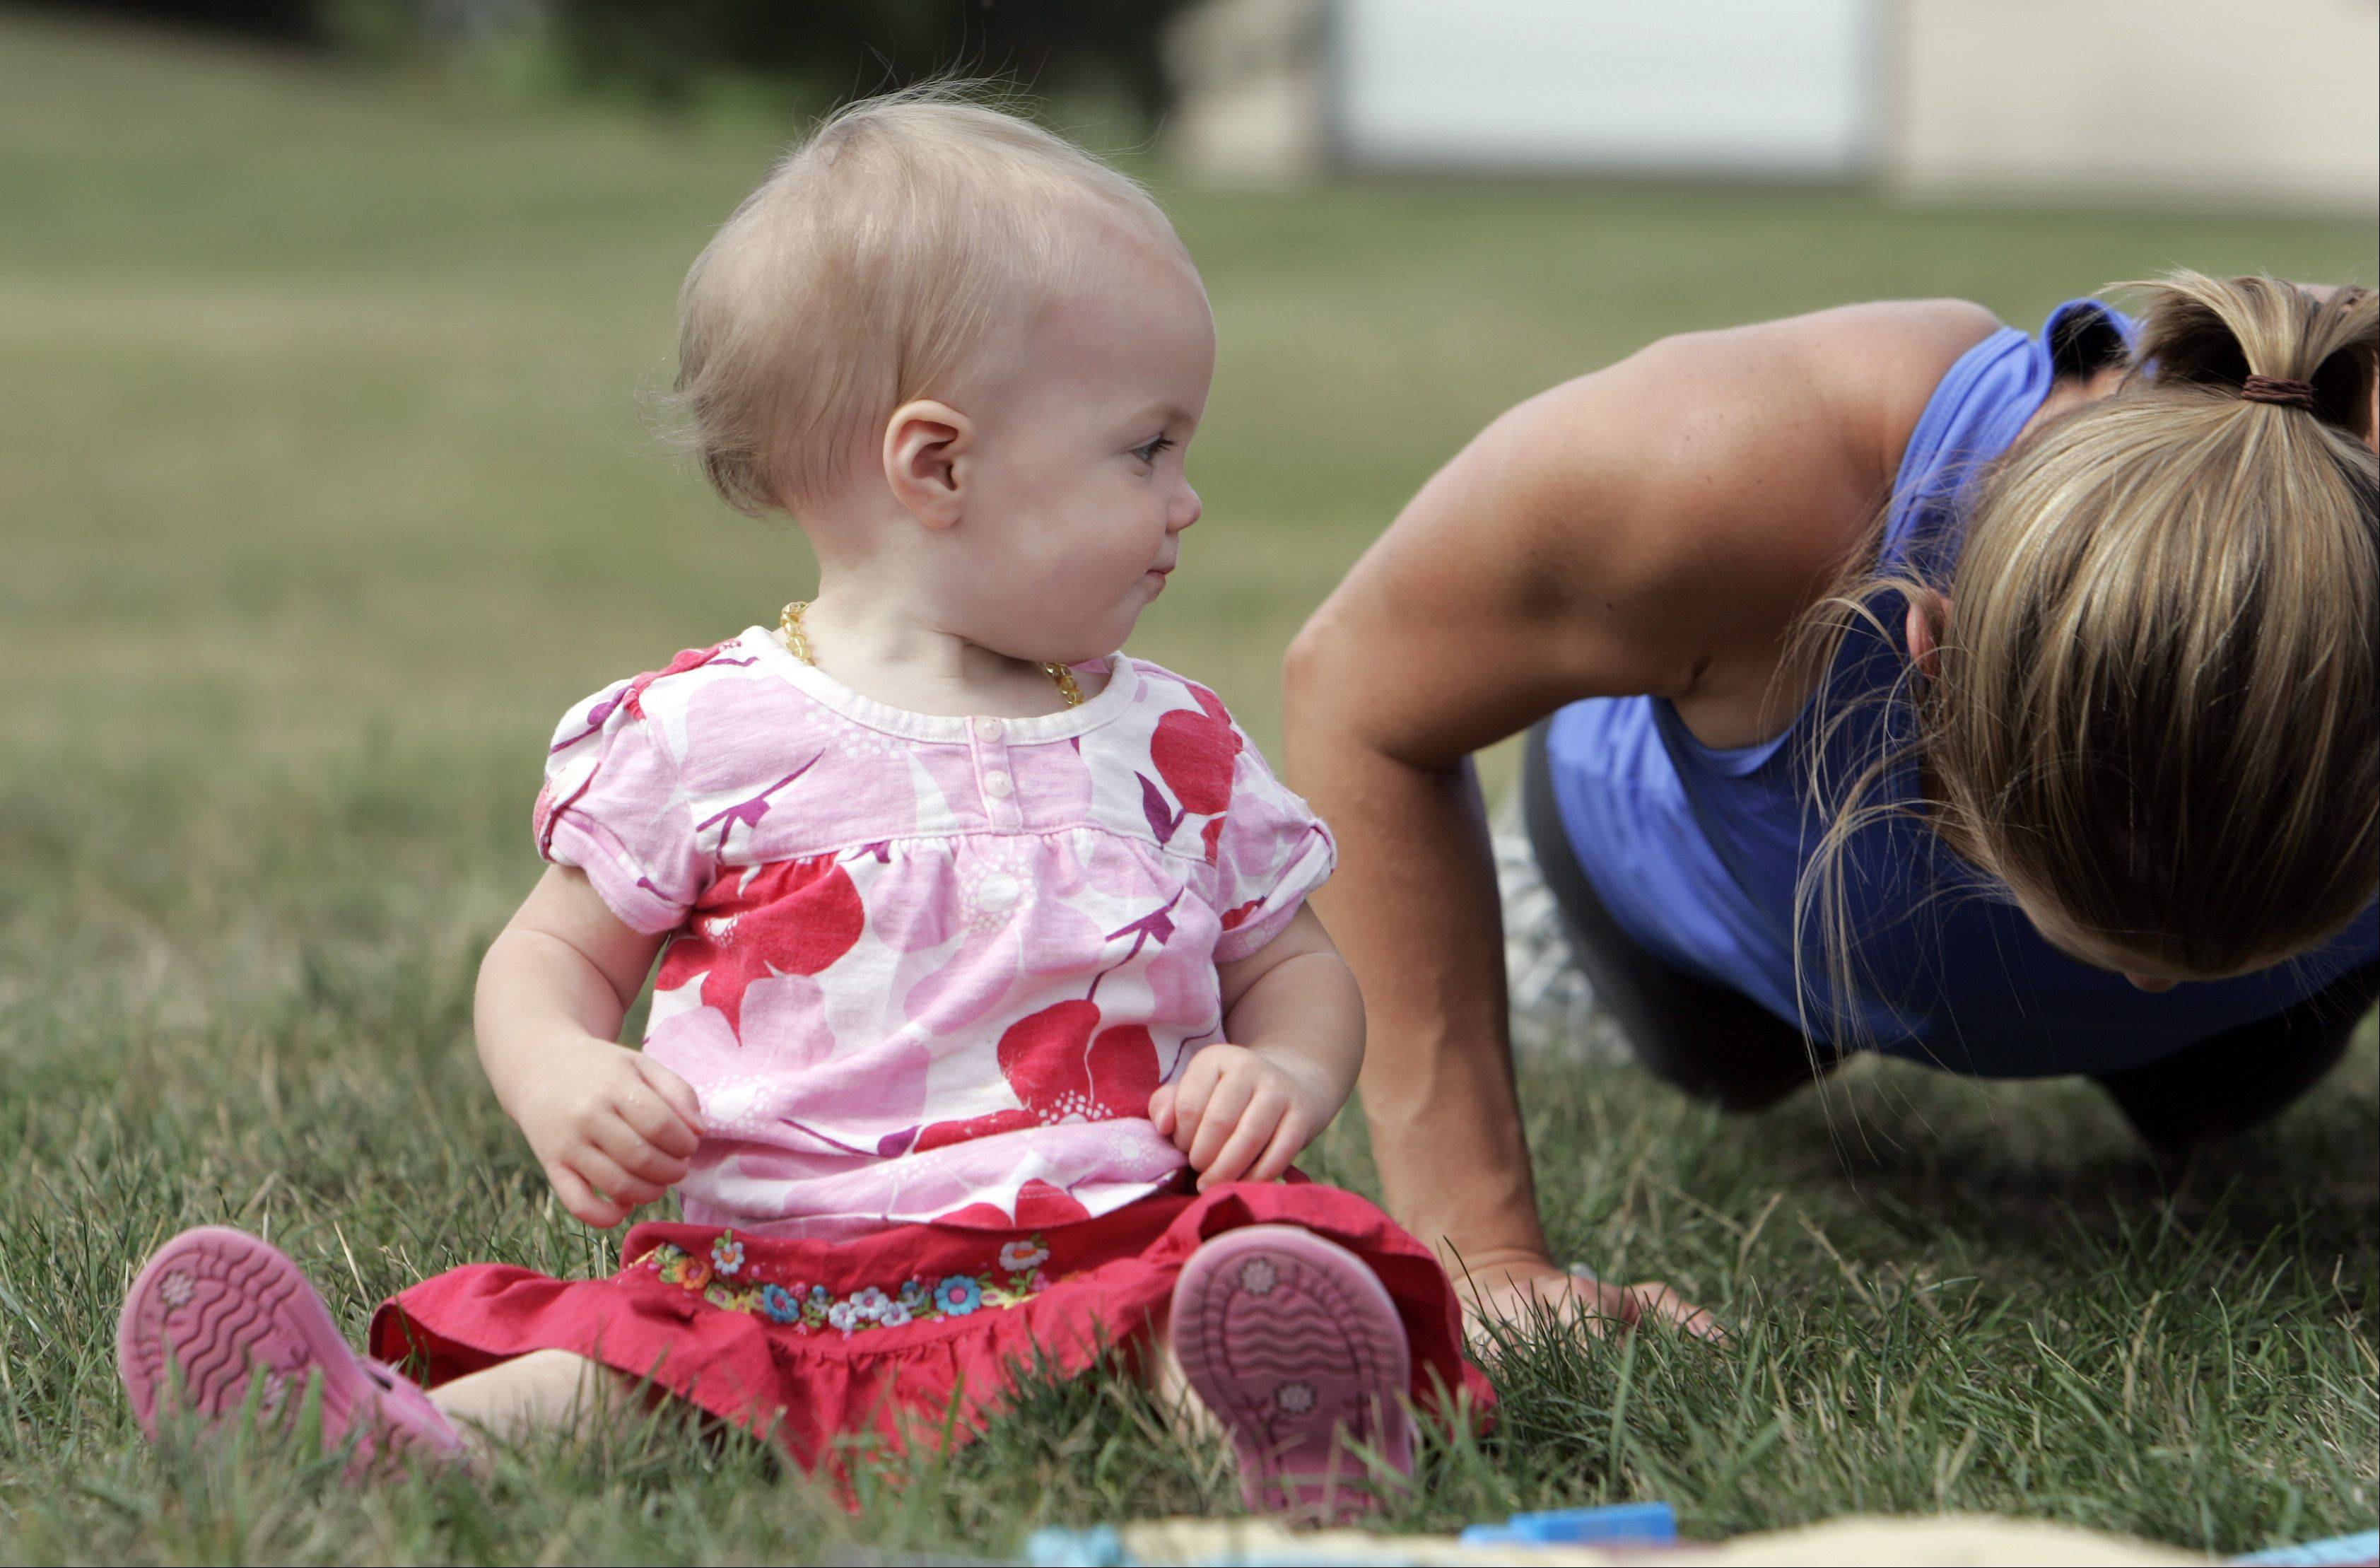 Emily Sobacki of Lake in the Hills, gets in some push-ups at Town Center Park in Gilberts as 11-month-old Skylar Guge of Gilberts watches with curiosity.